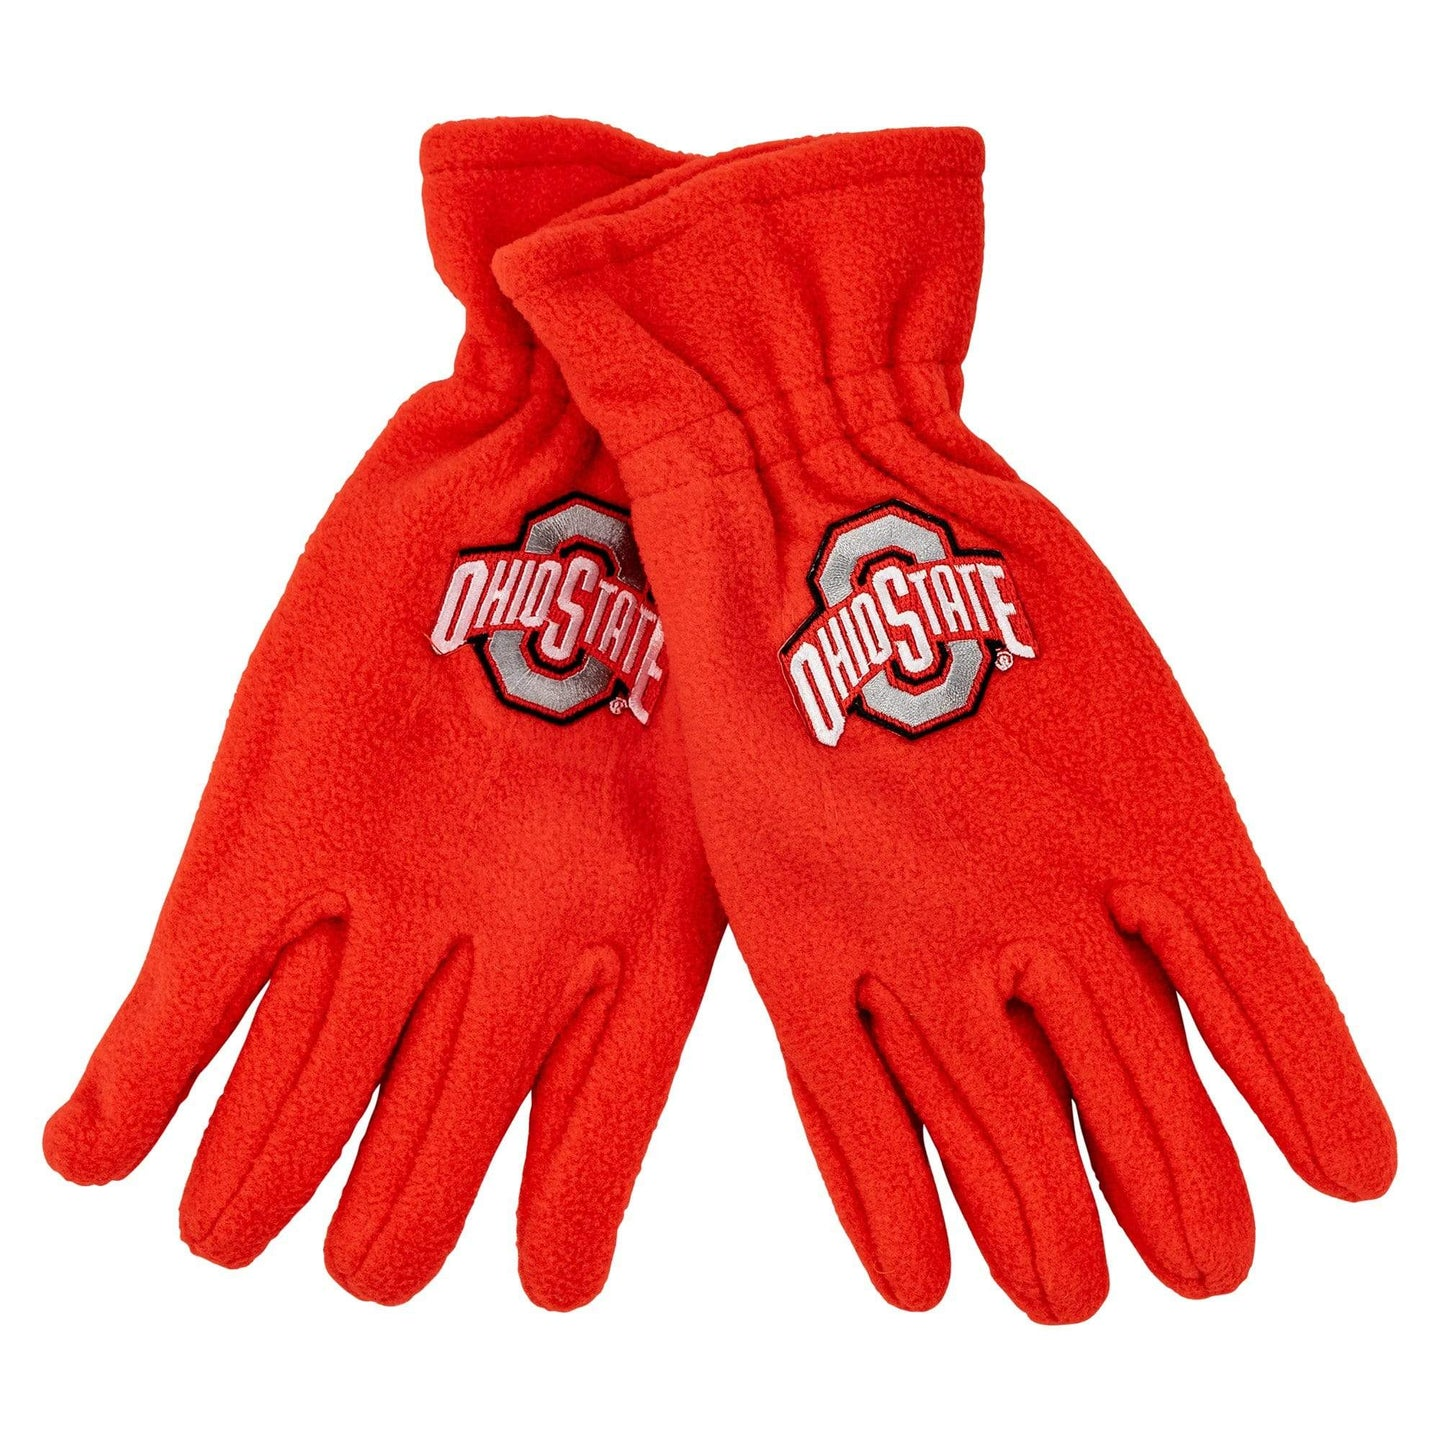 Ohio State Red Fleece Athletic O Gloves